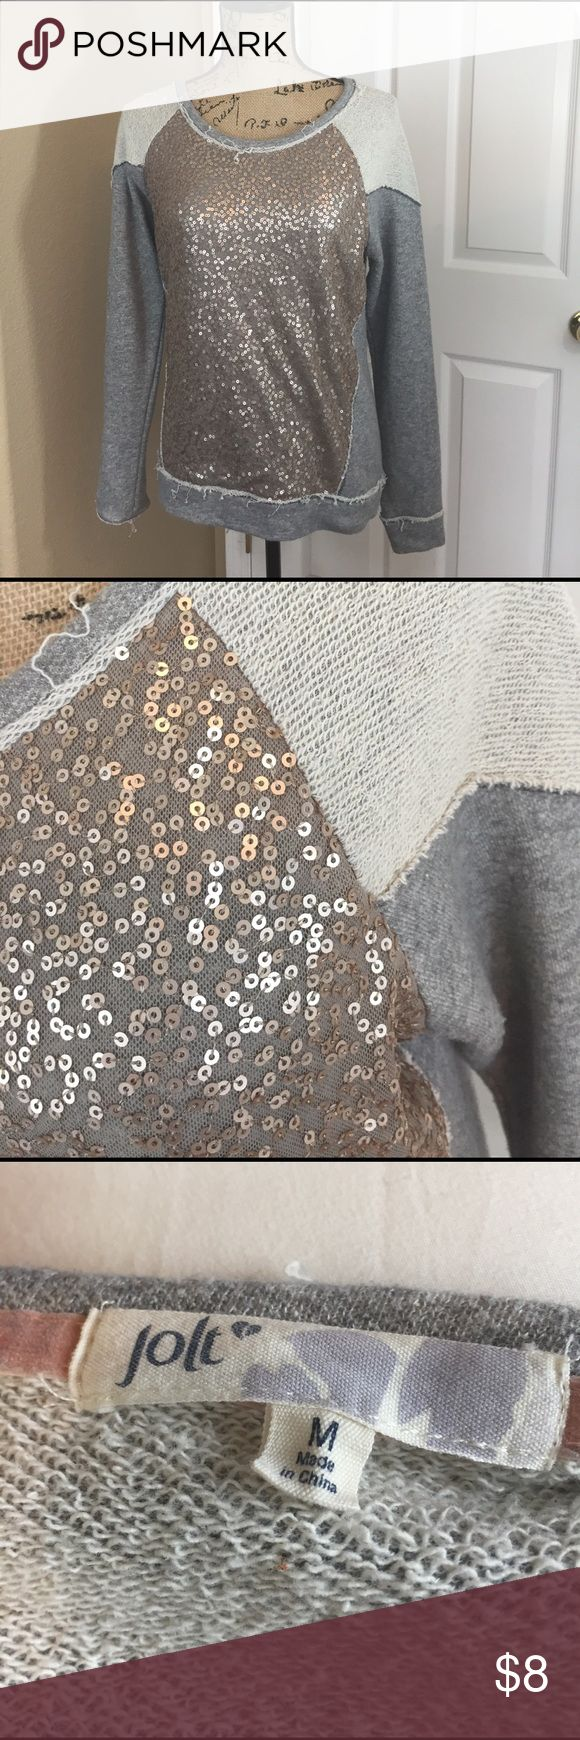 Gold sequence gray sweater Great sweater for relaxing in. It's a medium but for juniors. It's fits more like a small. Jolt Sweaters